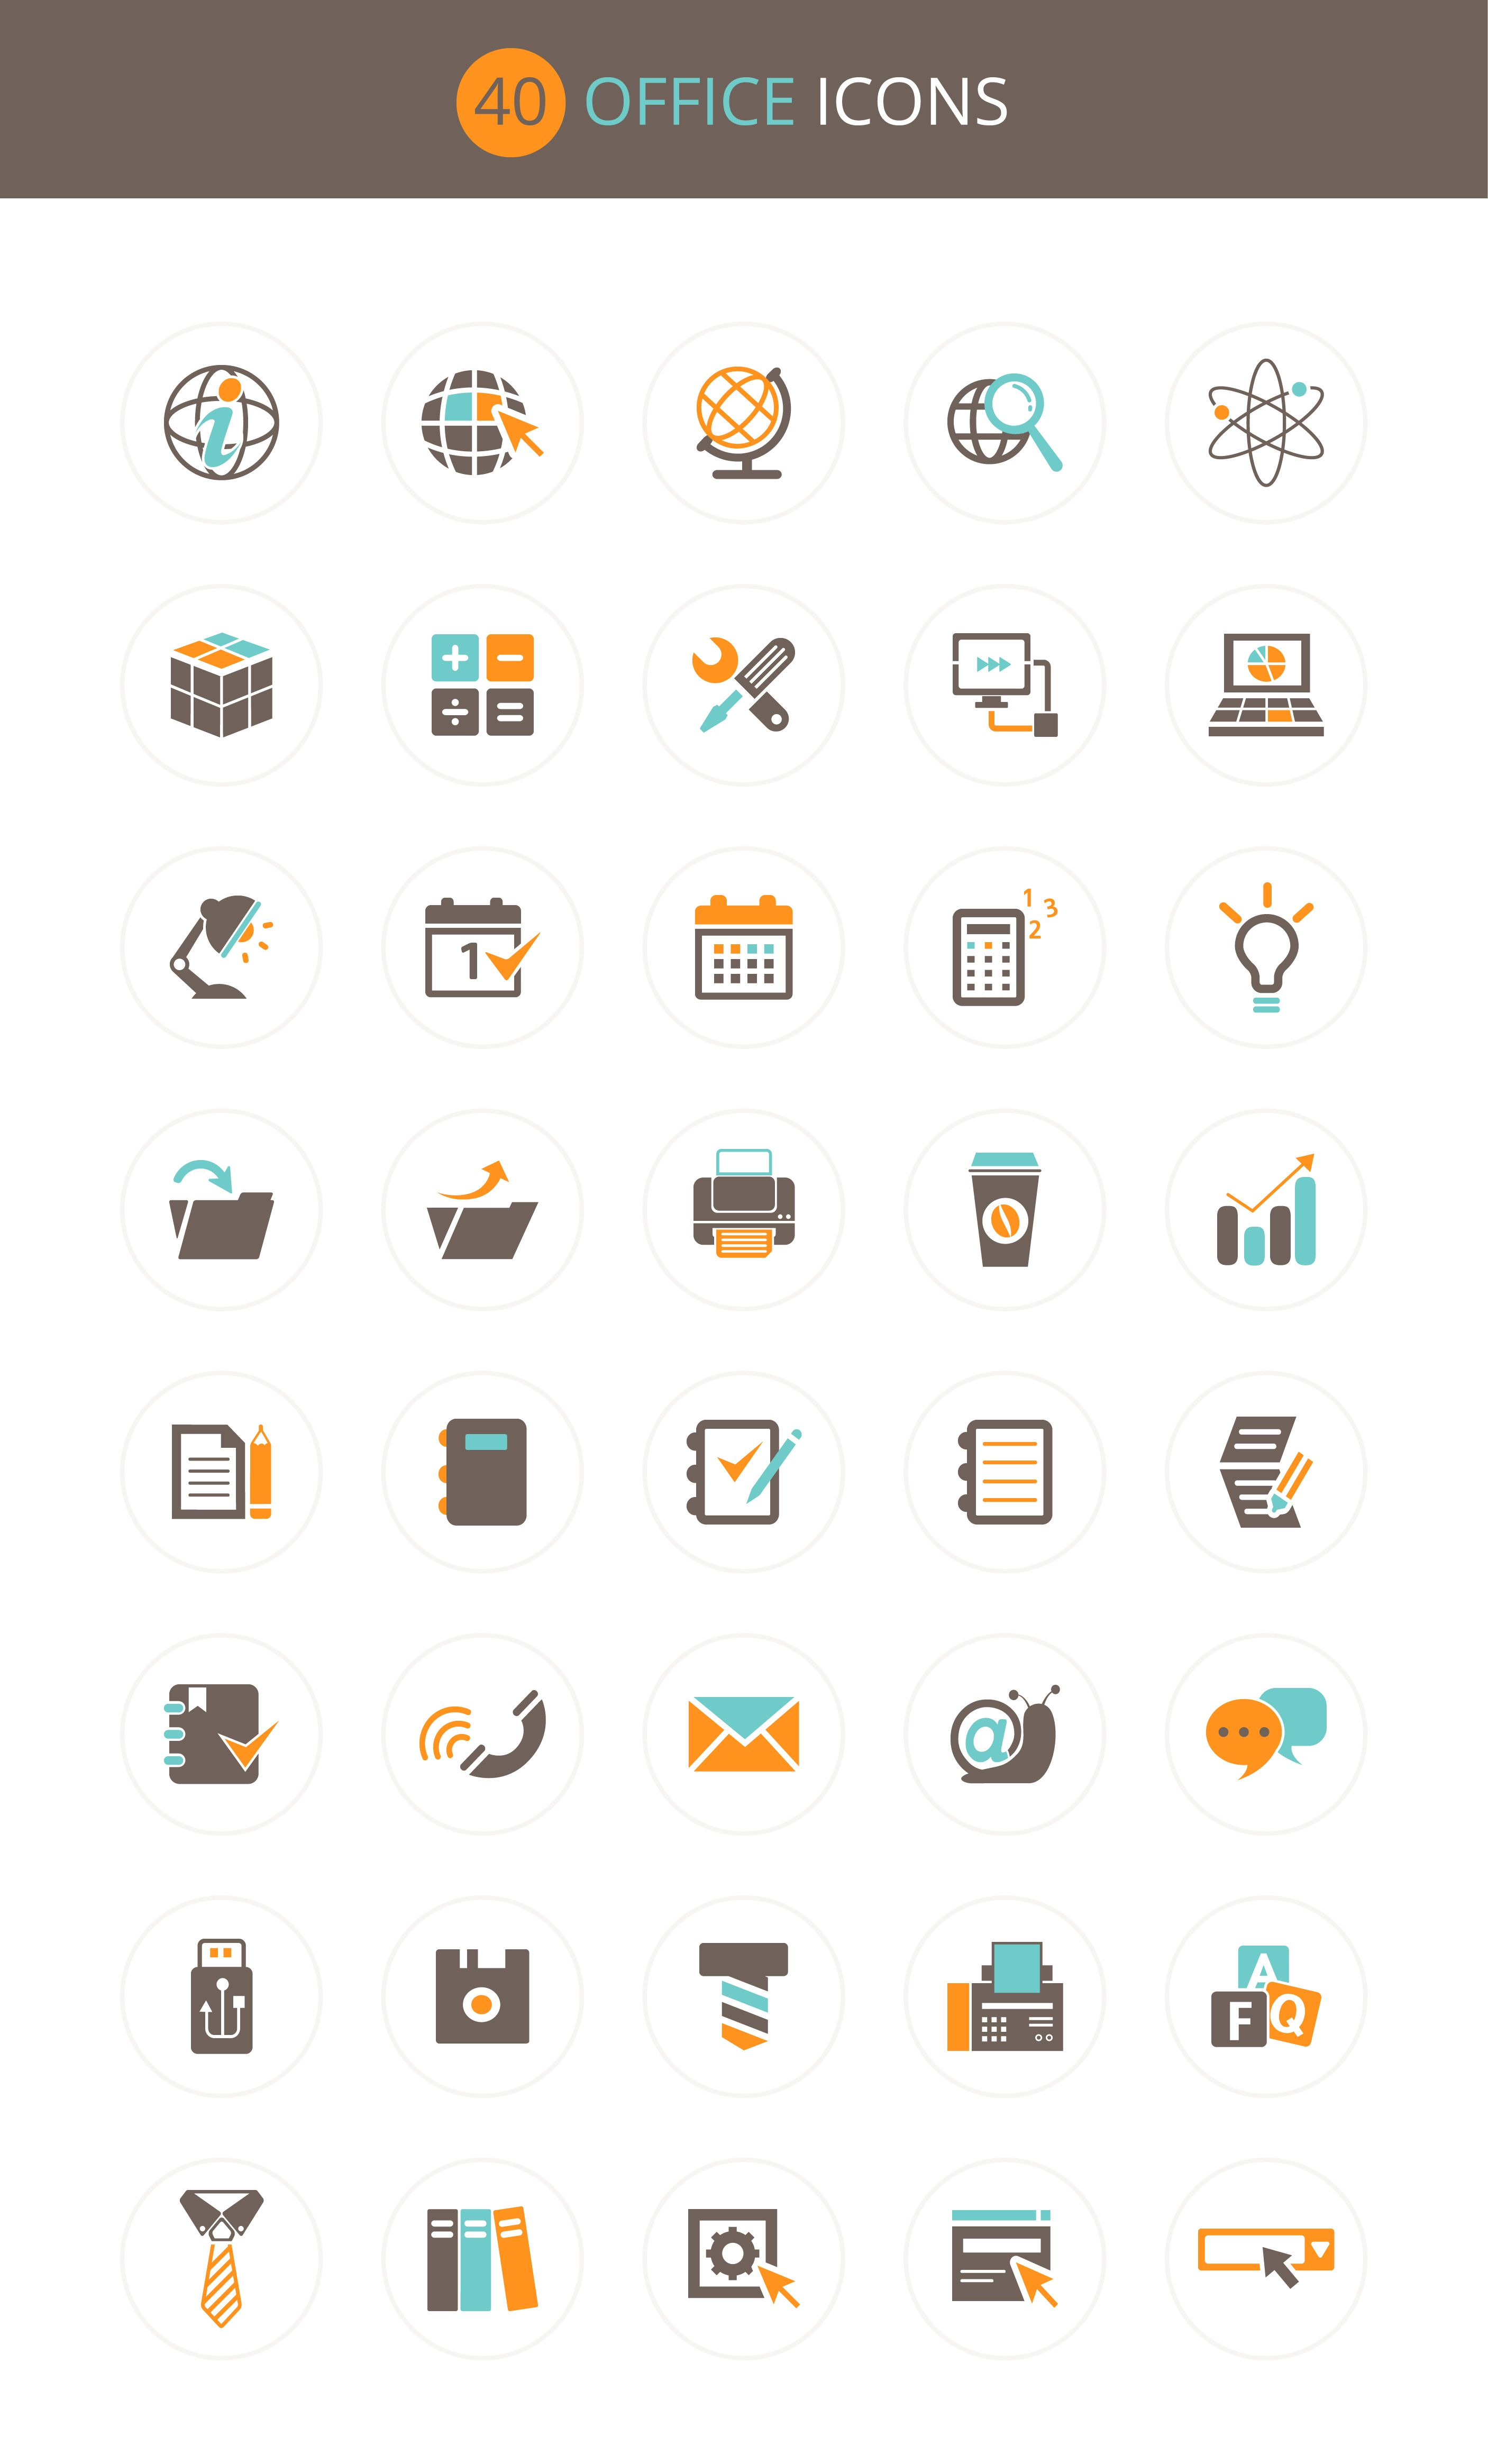 Free Download Office Icon Set (40 icons PSD , AI , EPS